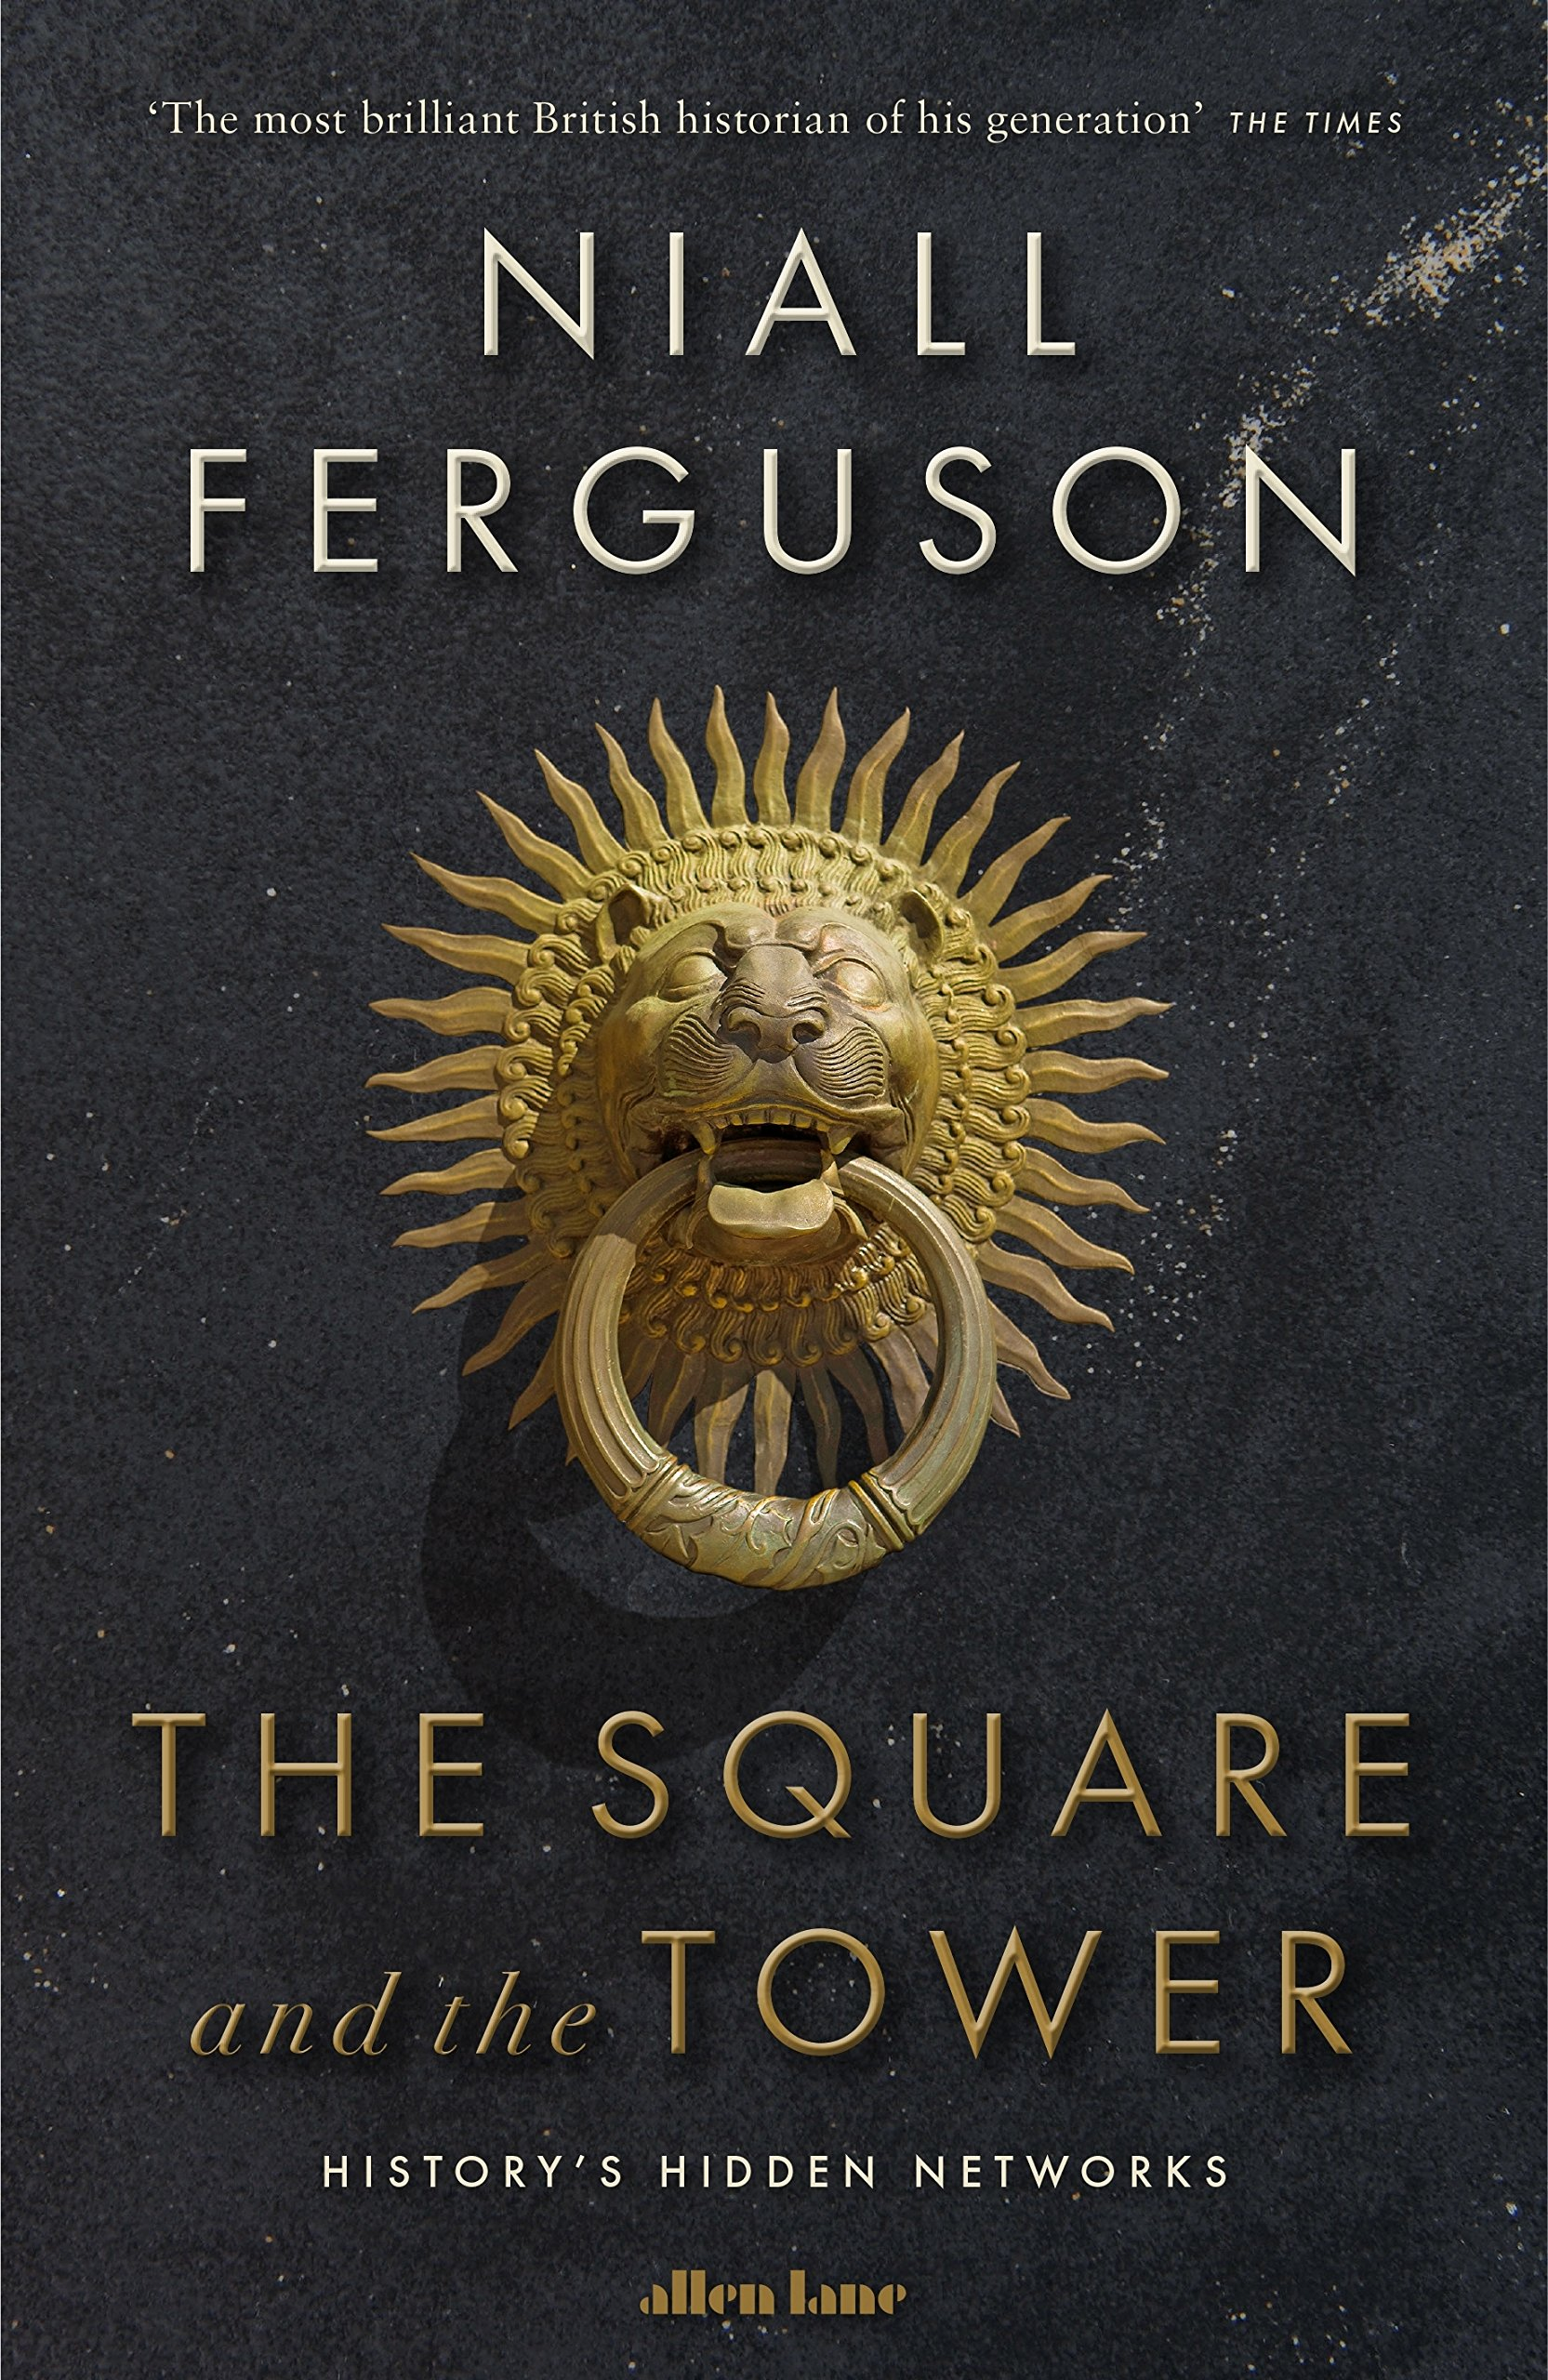 The Square and the Tower: Networks, Hierarchies and the Struggle for ...